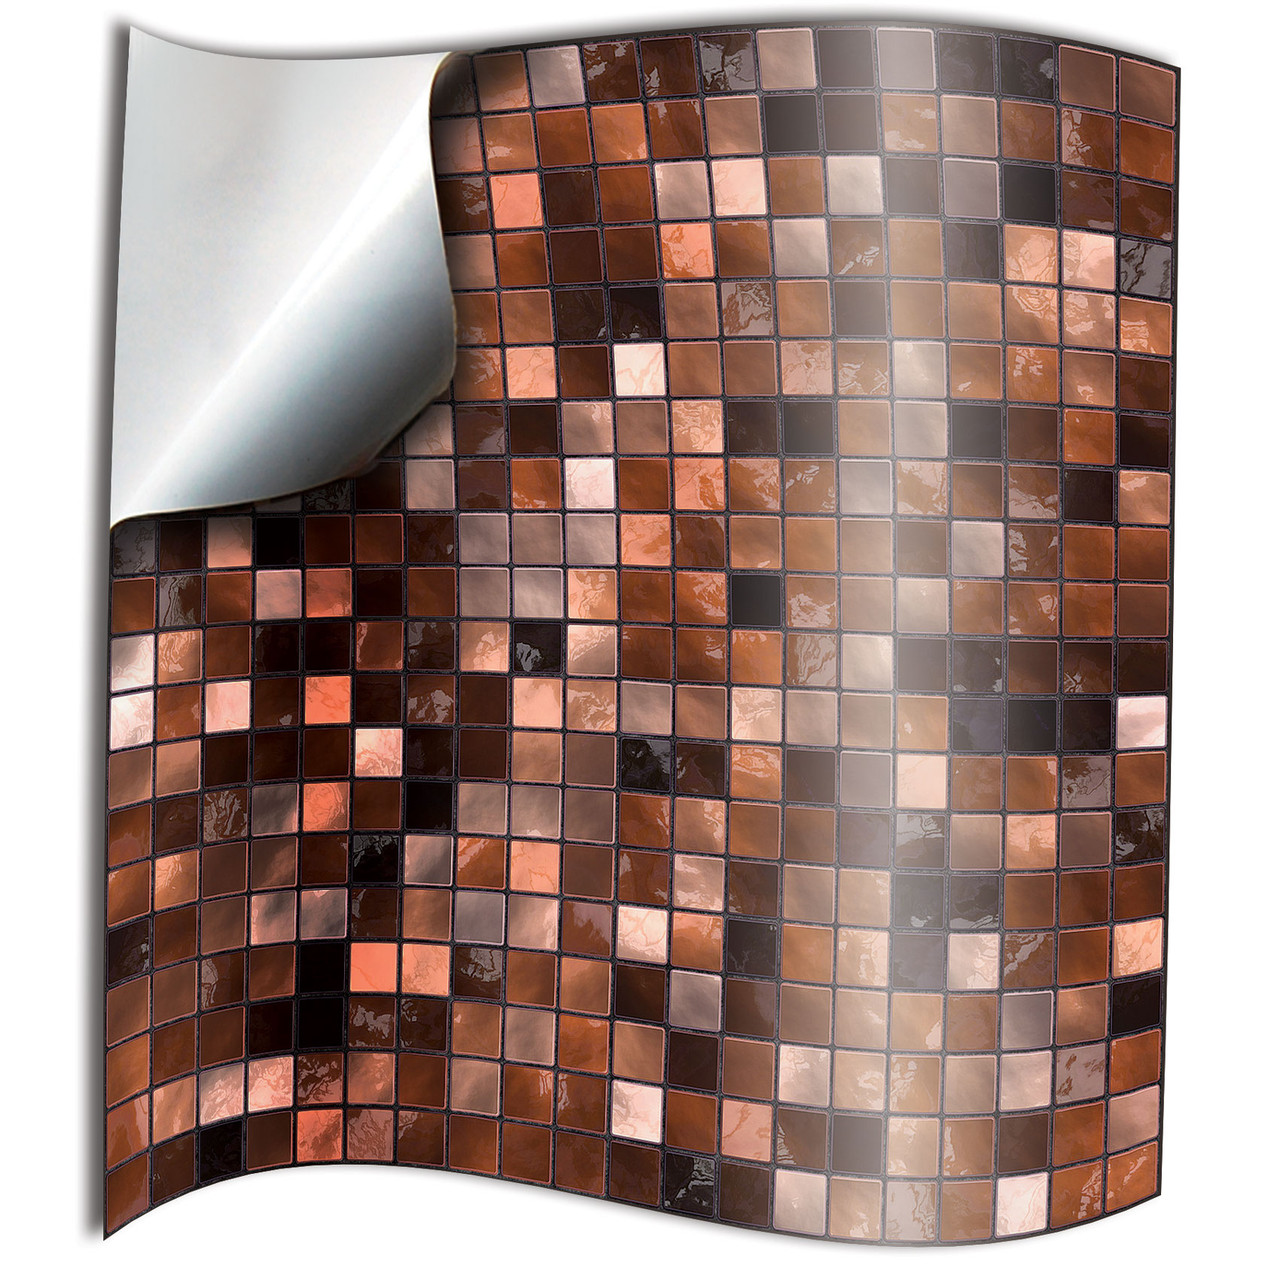 24 copper tile stickers for kitchen 15x15 10x10cm bathroom tile transfers 6x6 or 4x4 waterproof tile decals